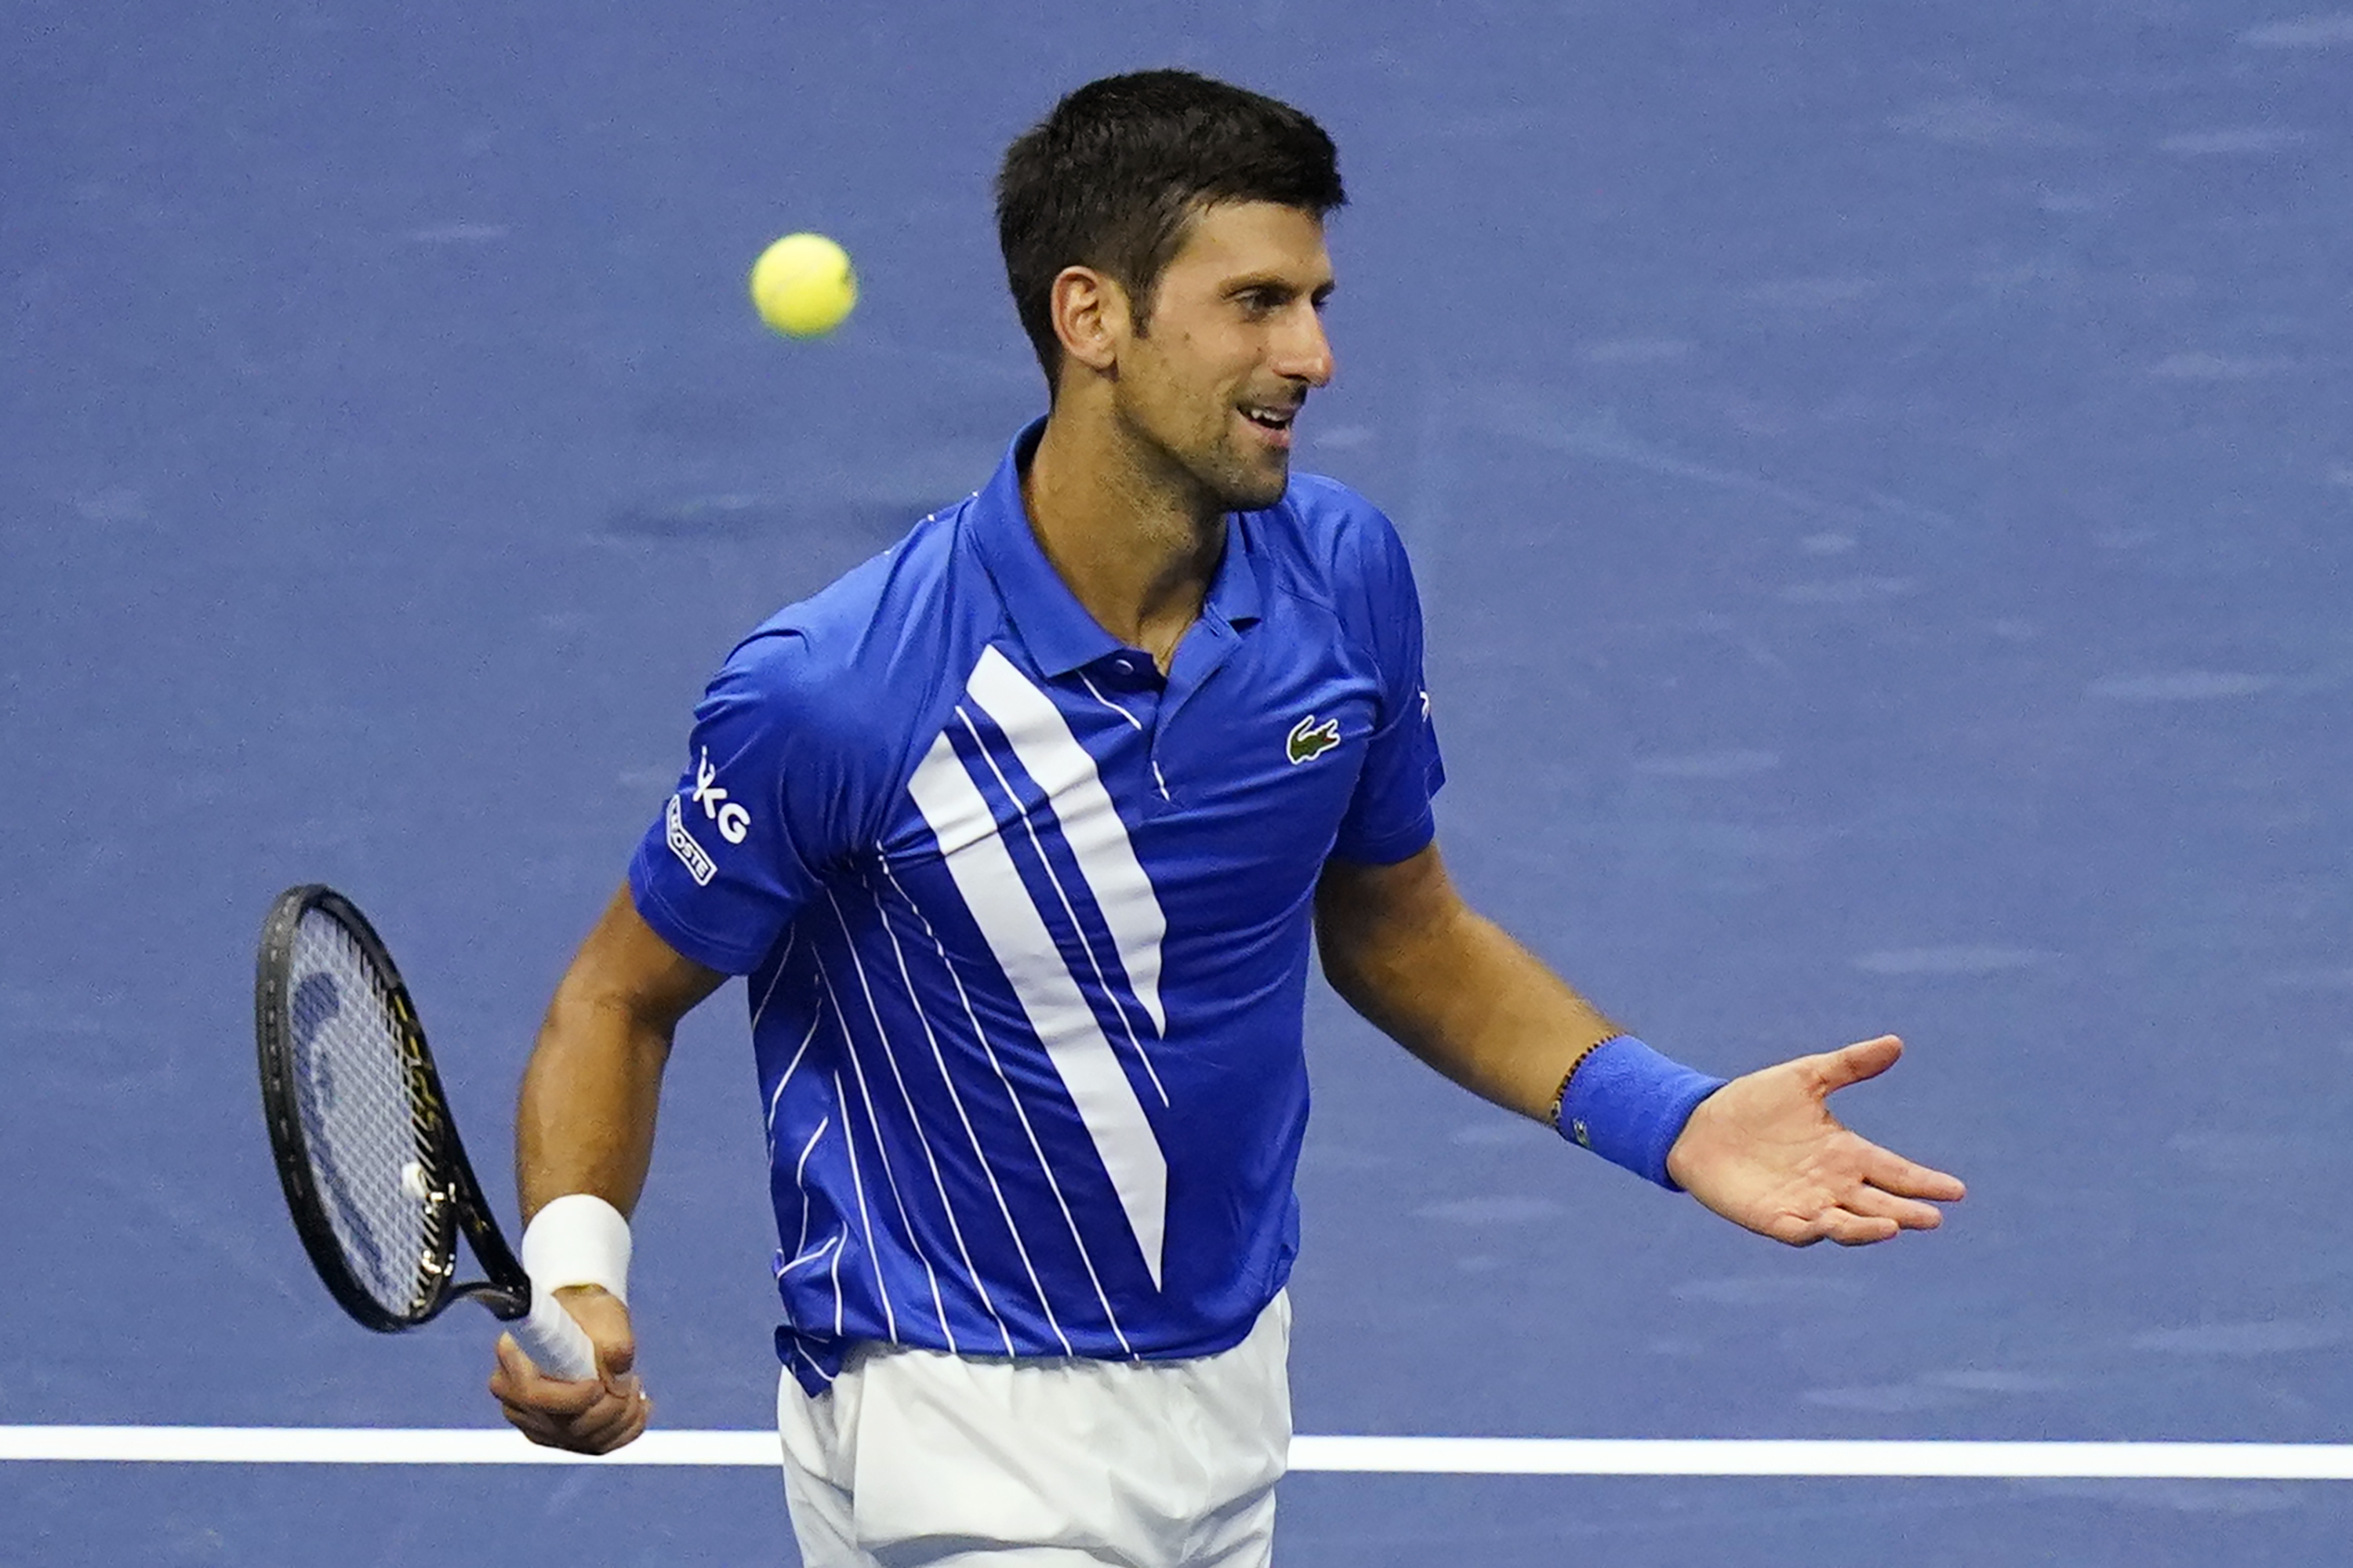 Novak Djokovic Dq D From 2020 Us Open Accidentally Hit Line Judge With Ball Bleacher Report Latest News Videos And Highlights